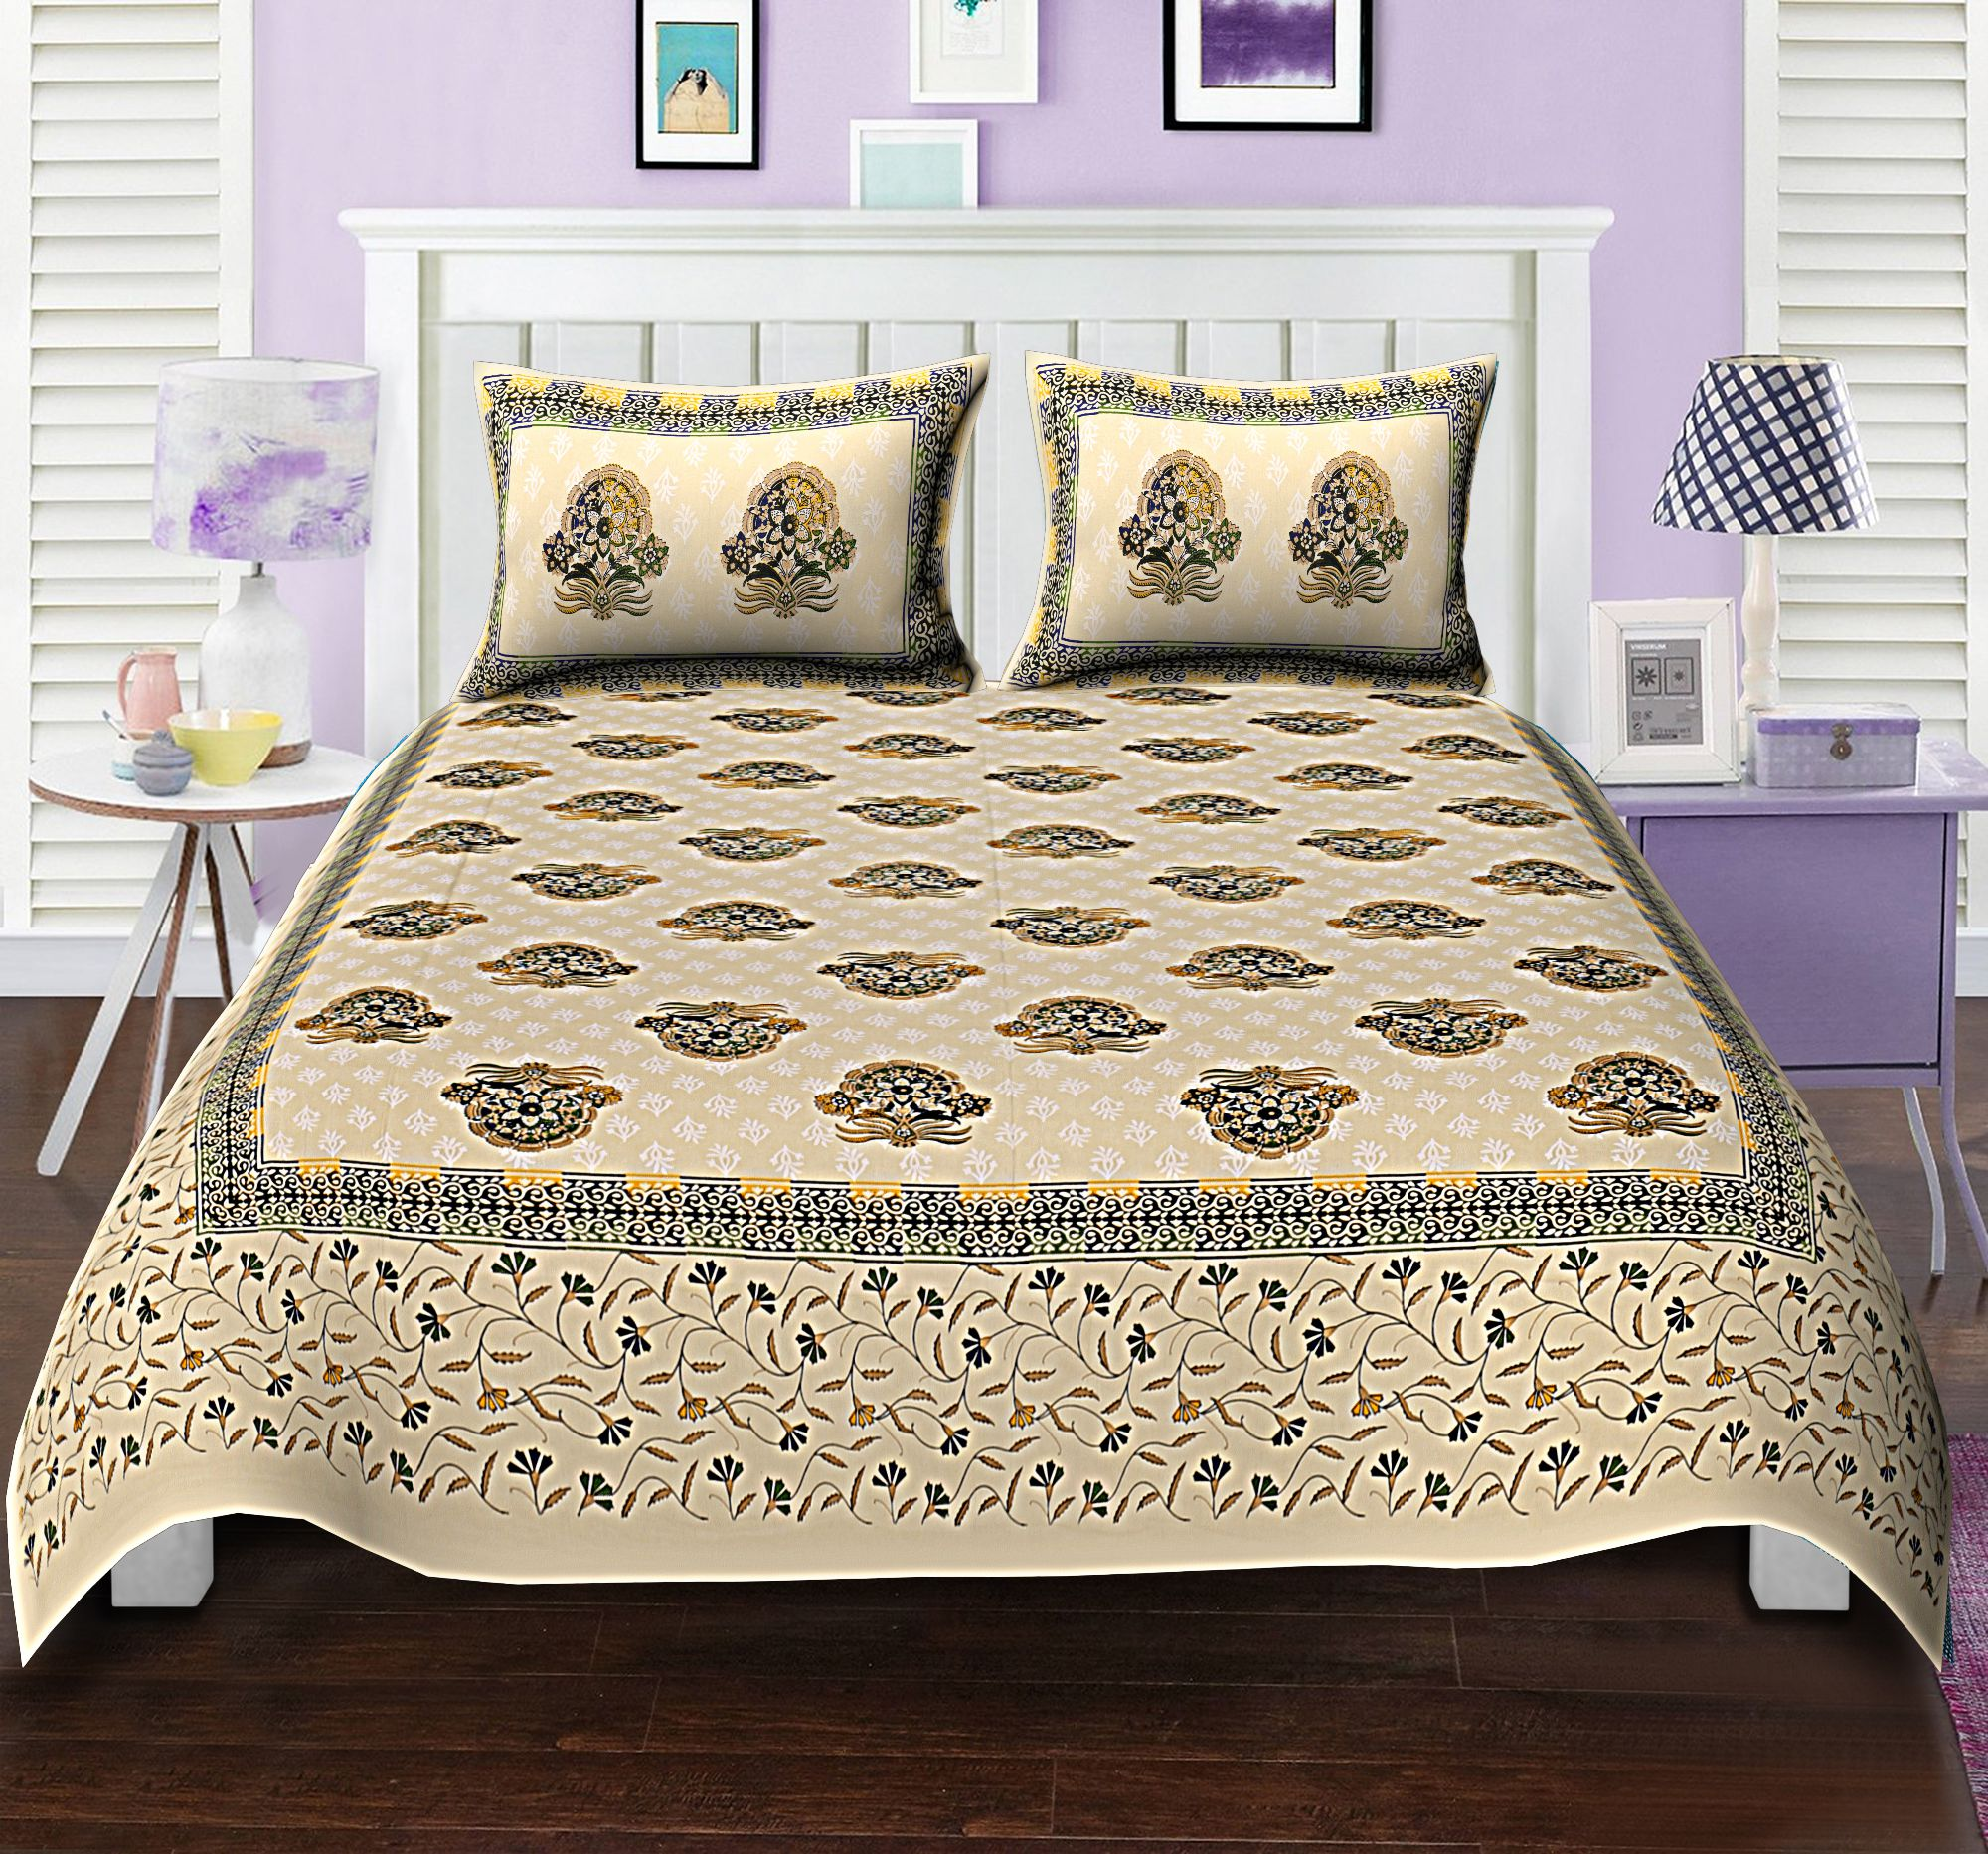 Uniqchoice Cotton King Size Bed Sheet With 2 Pillow Covers